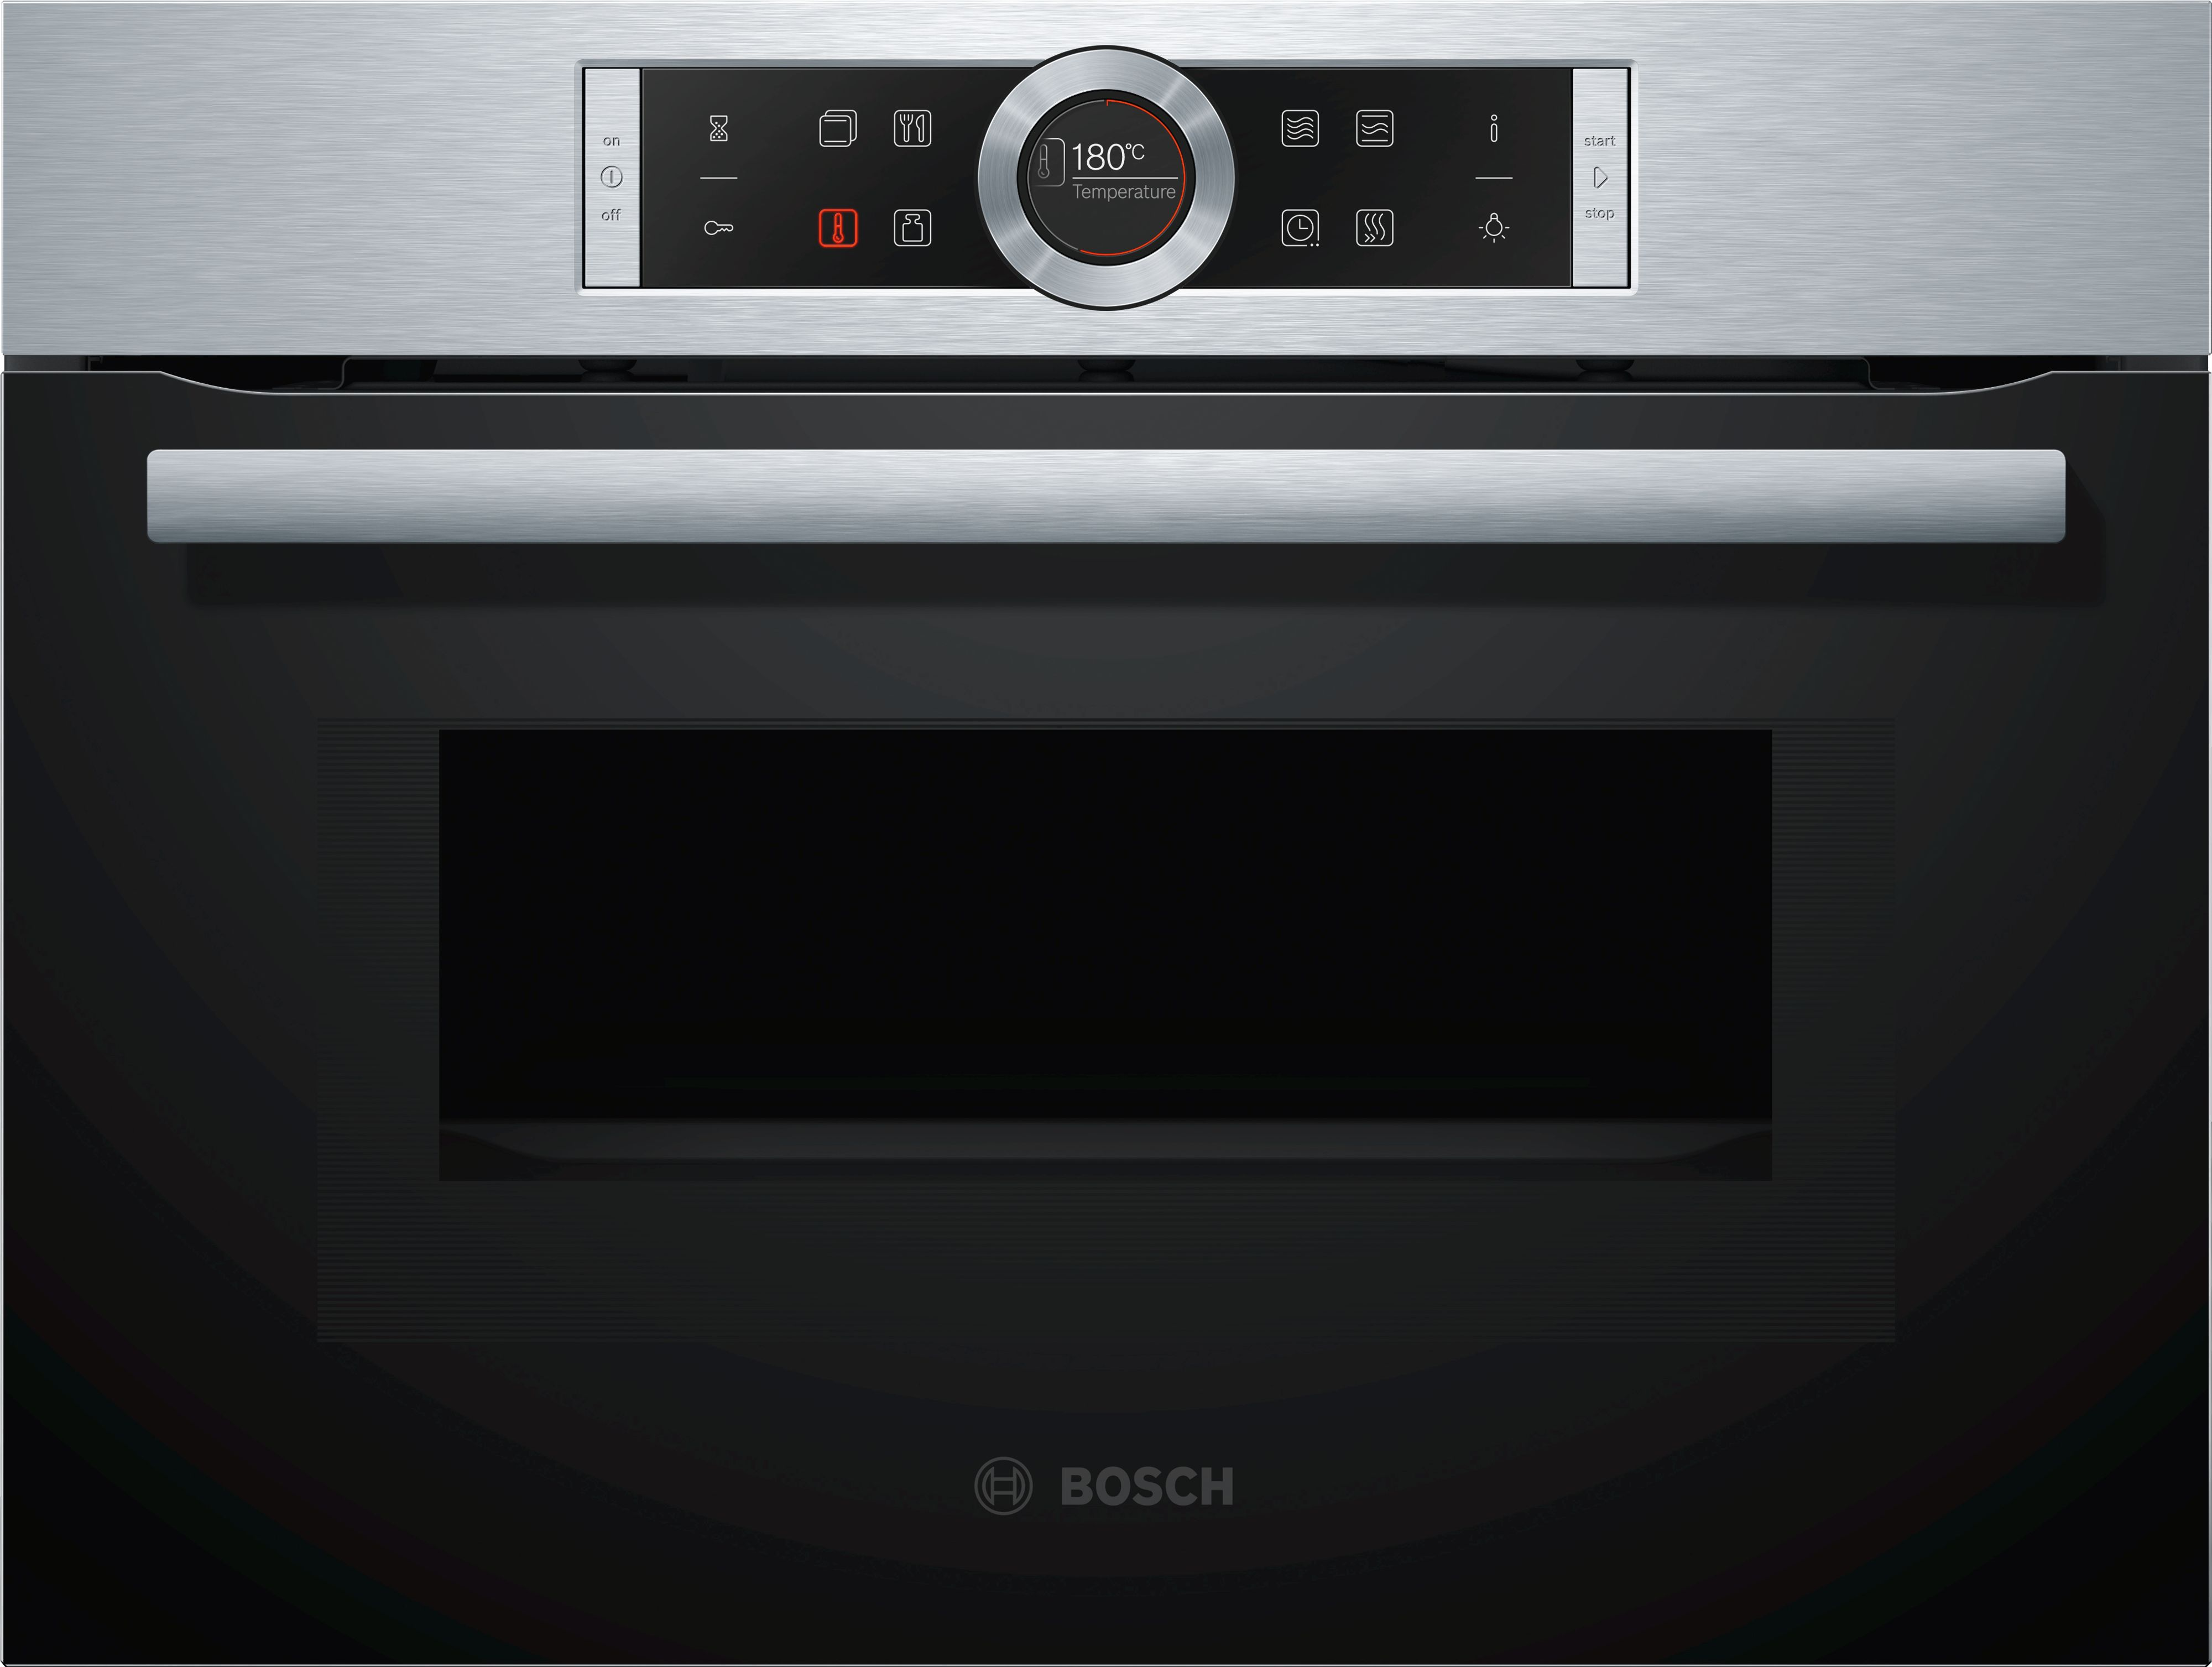 FORNO MULTIFUNZIONE BOSCH CMG633BS1 CMG633BS1 - BbmShop